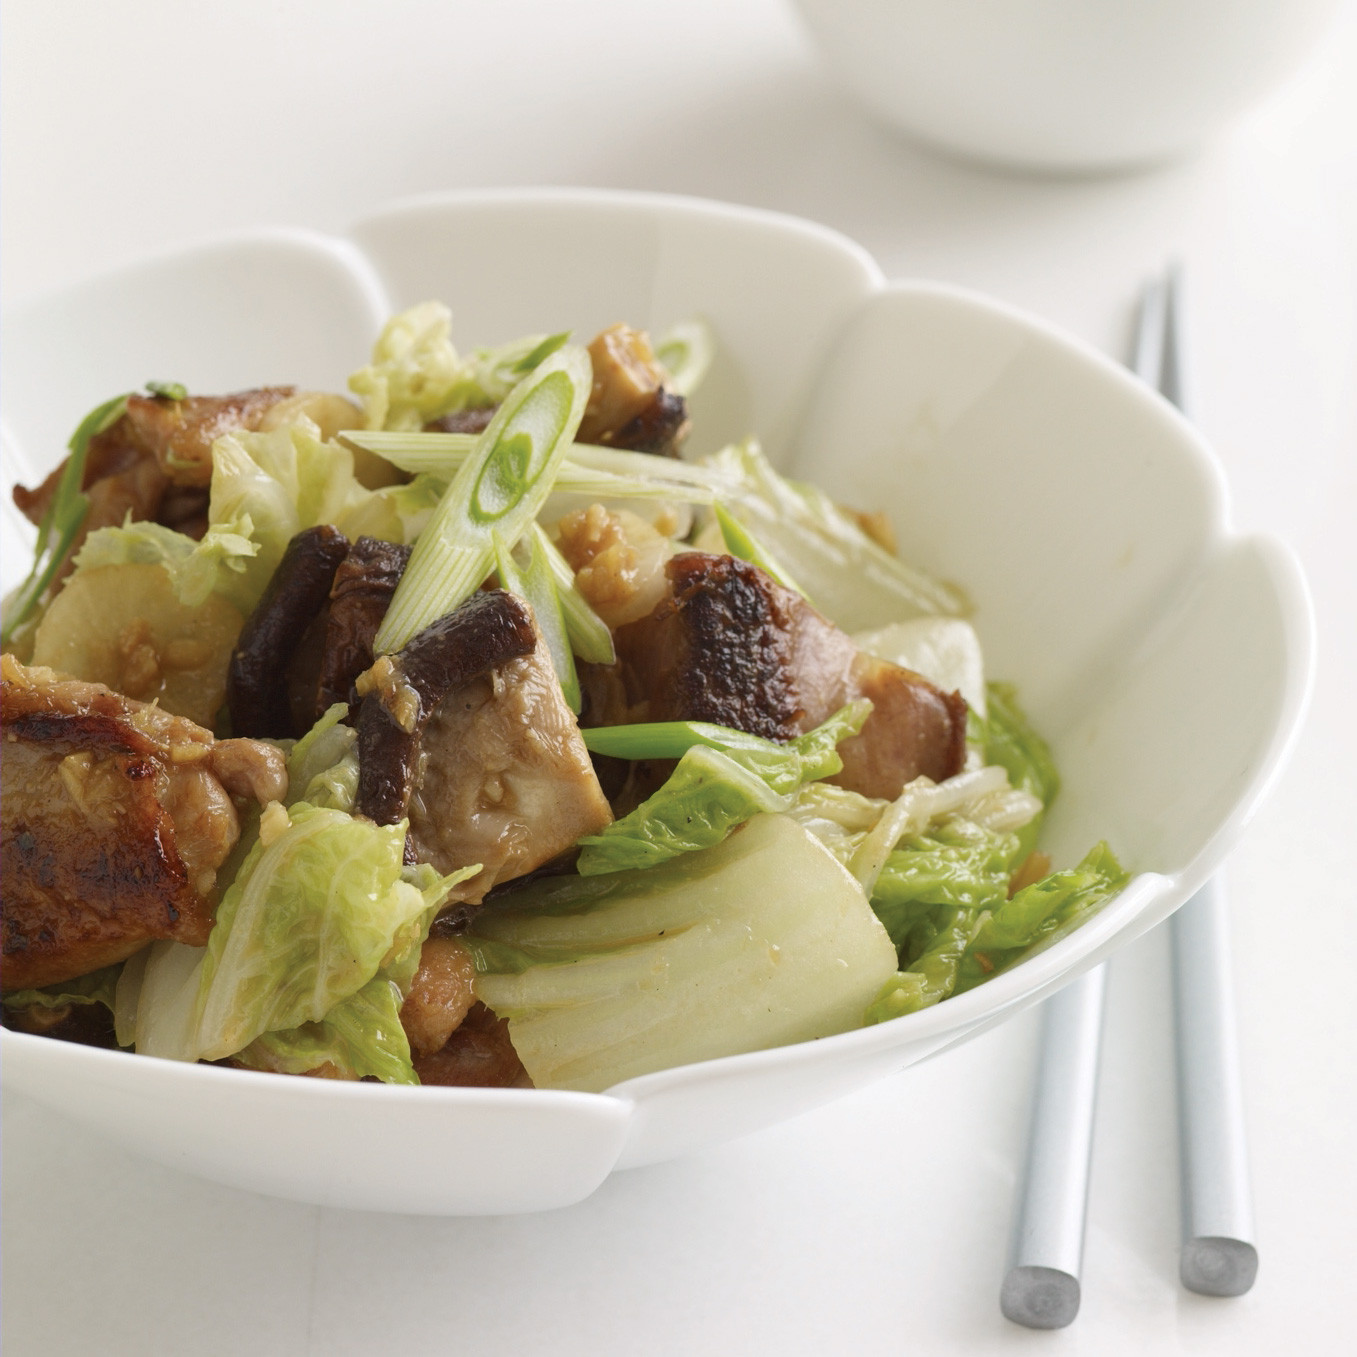 Chicken And Cabbage  Miso Ginger Chicken and Cabbage Recipe Marcia Kiesel